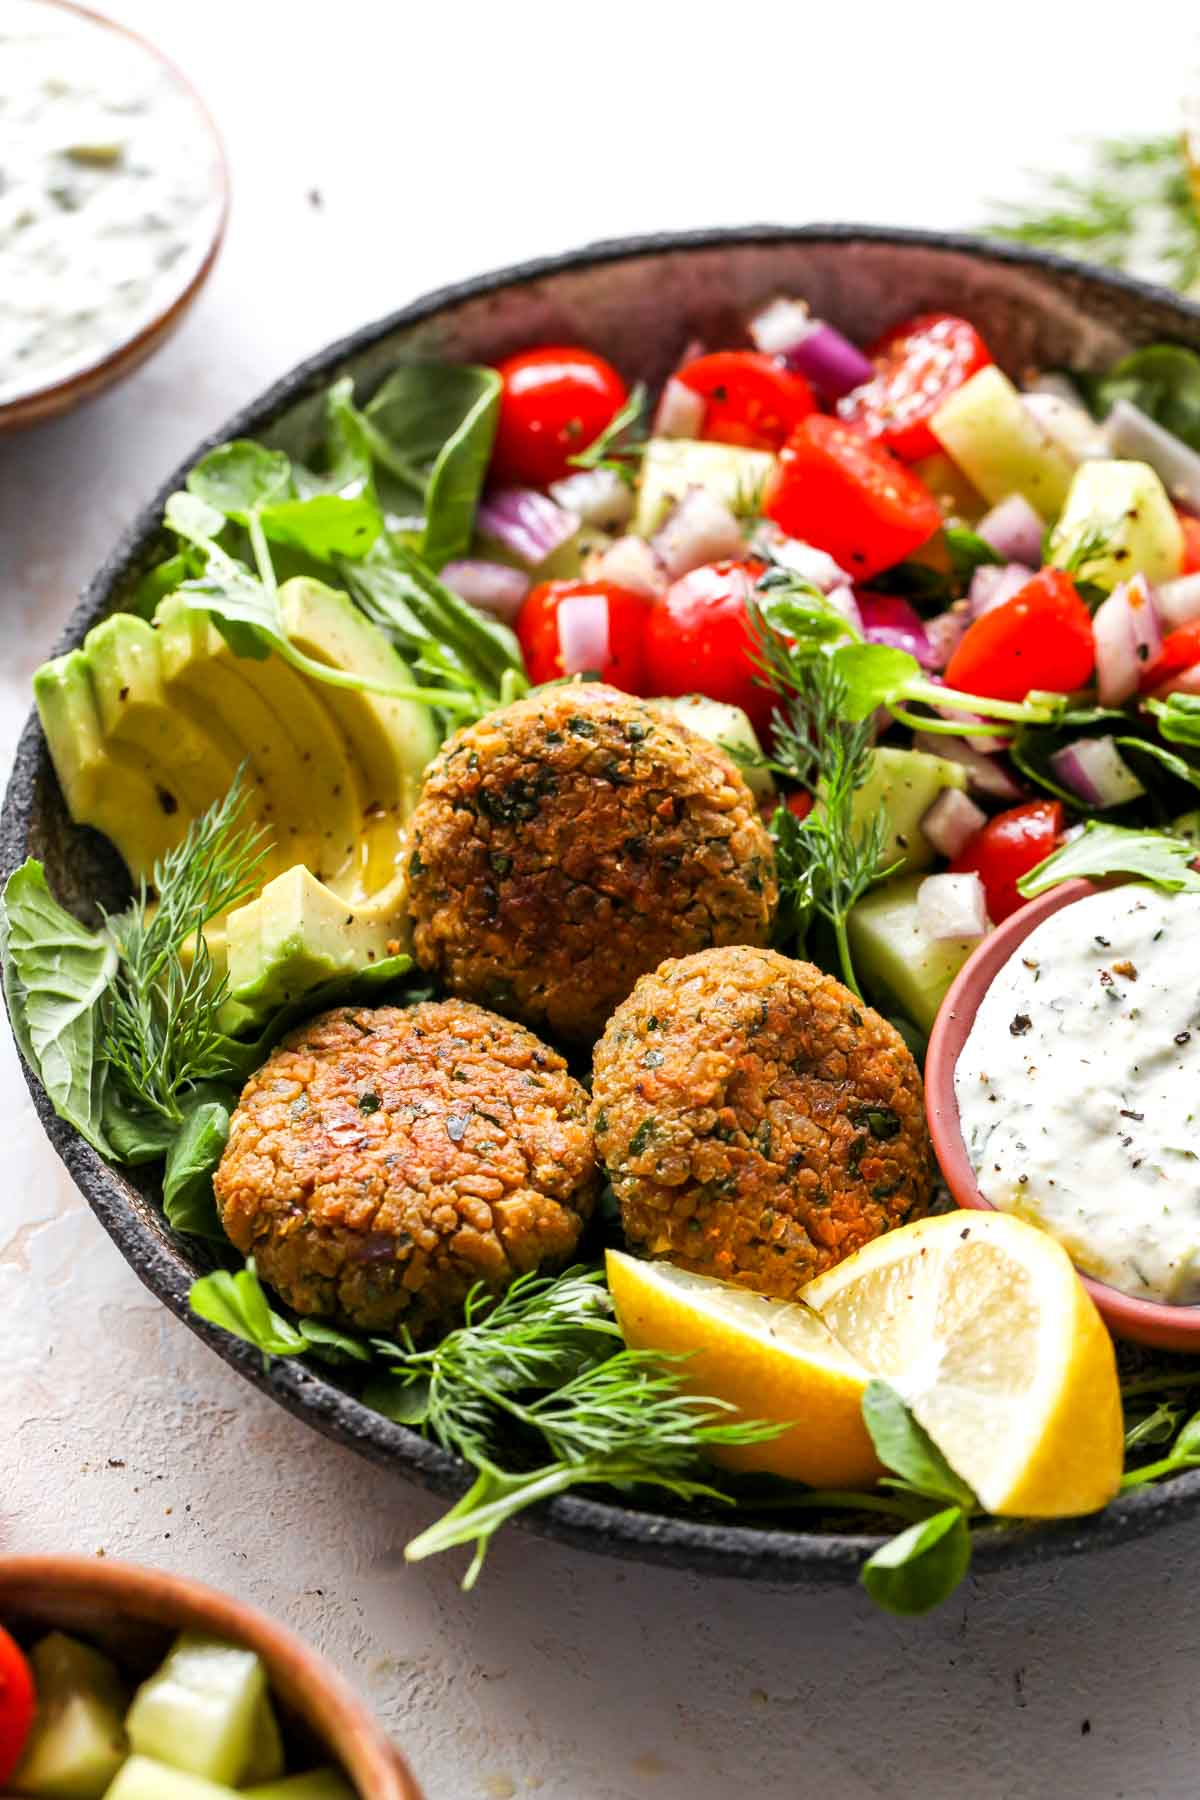 Falafel over a bed of greens with sliced avocado